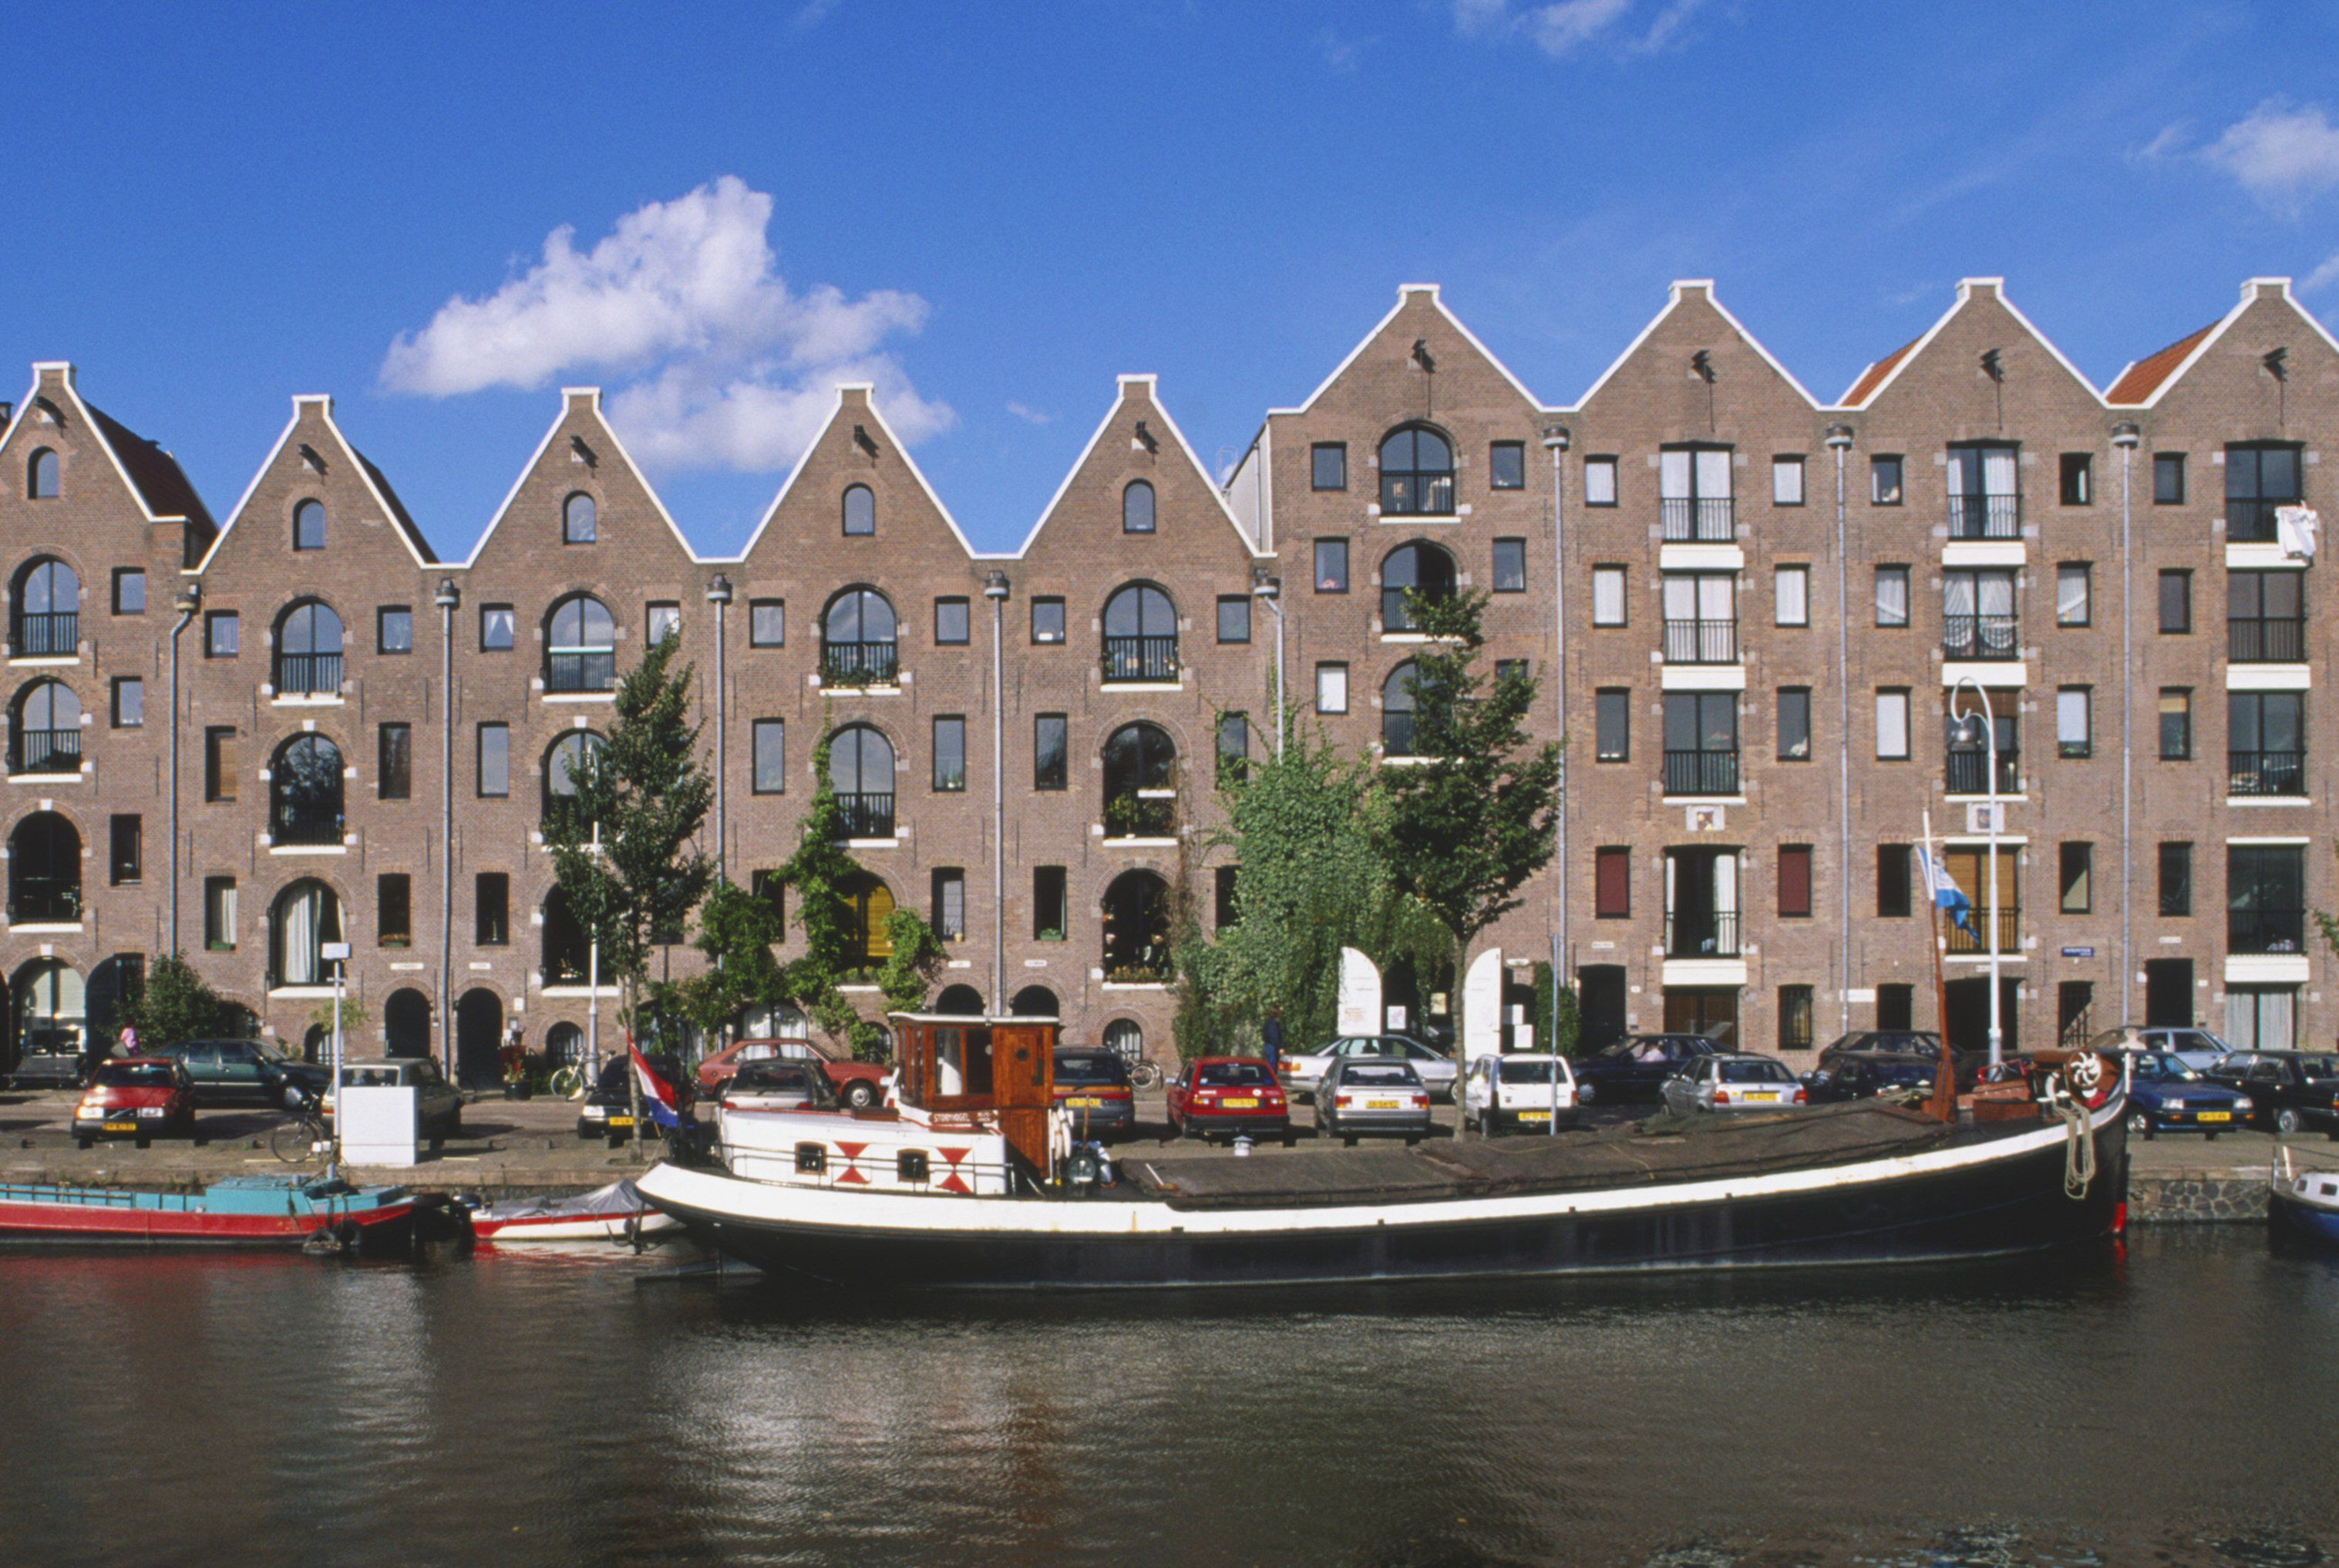 Spout Gabled Warehouses Along the Entrepotdok canal in Amsterdam